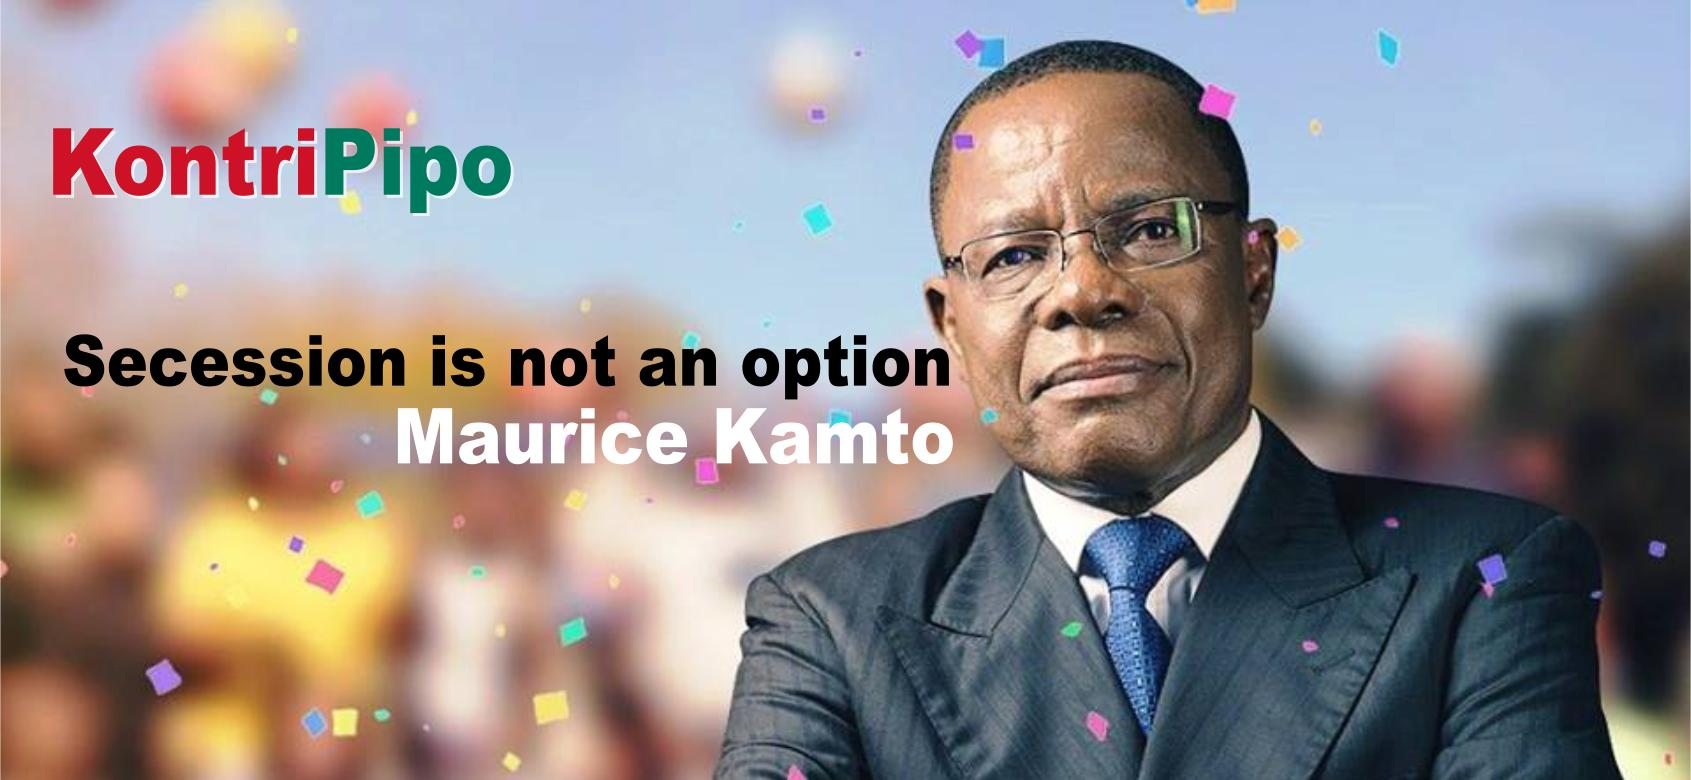 maurice Kamto says Secession is not an option